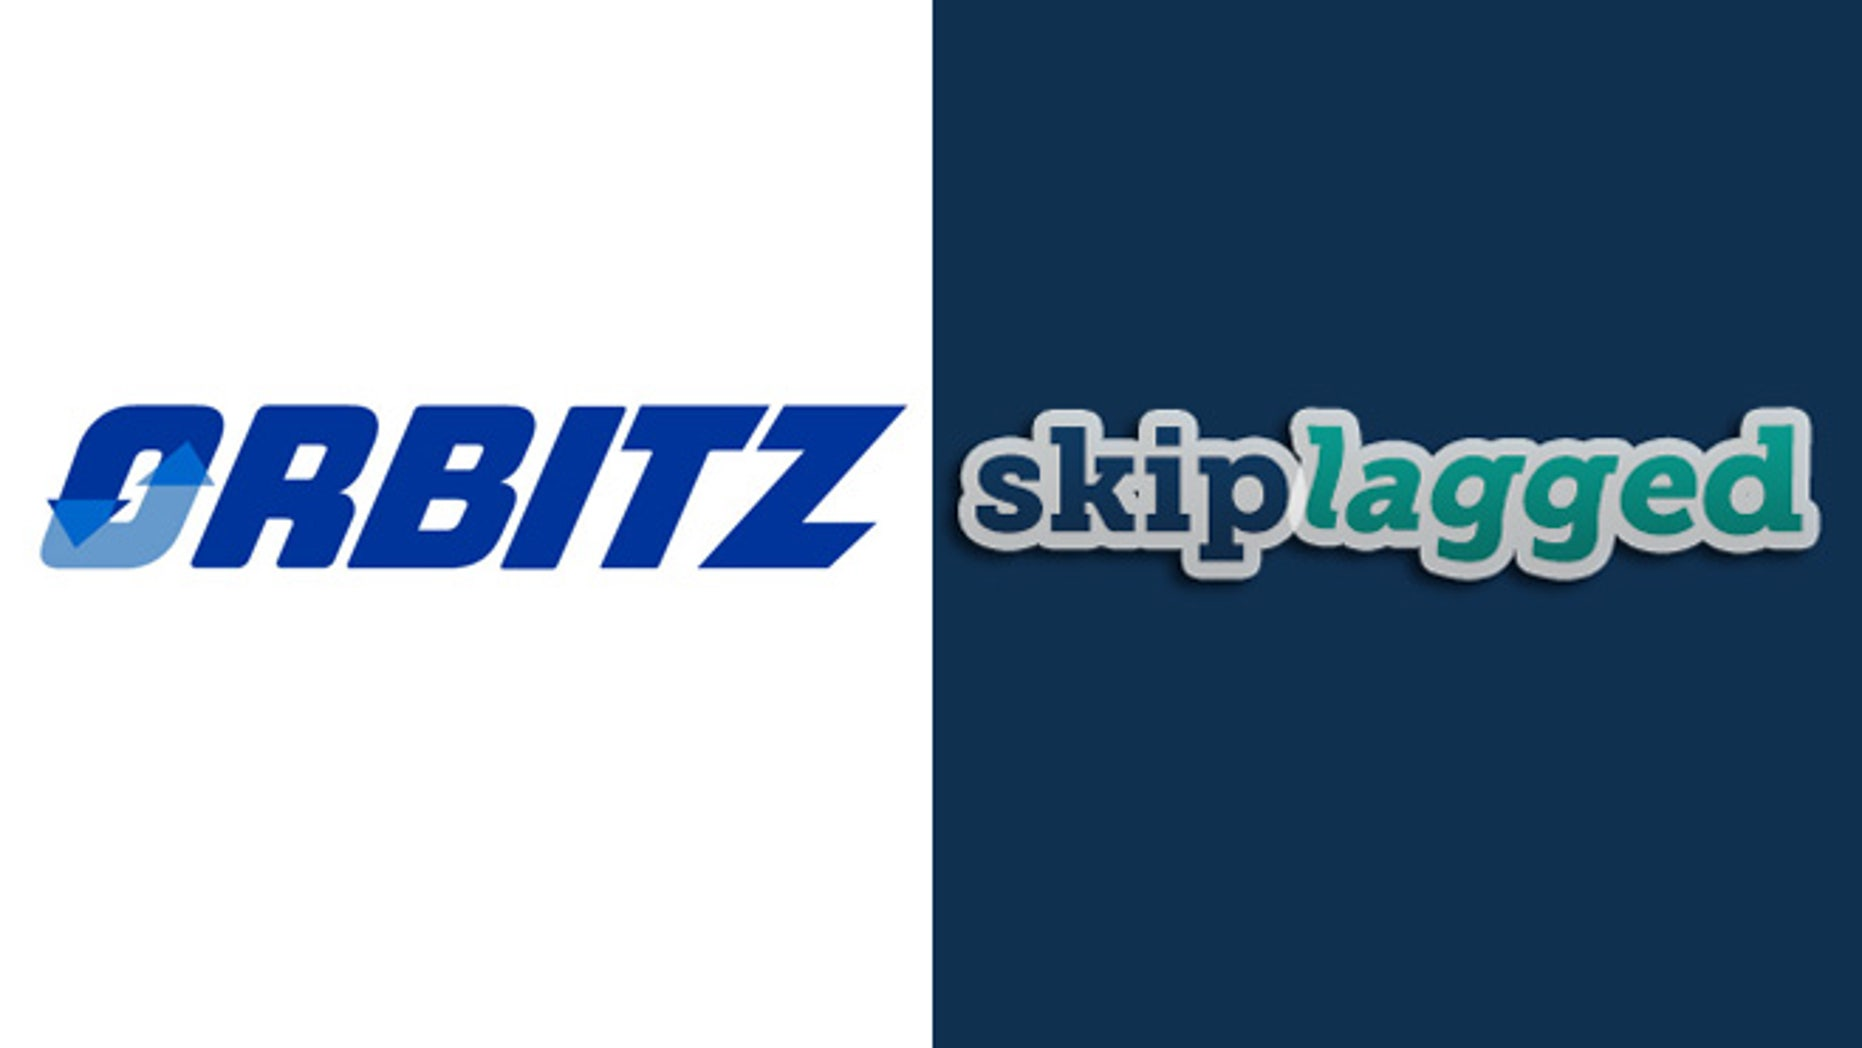 Orbitz settles its lawsuit with Skiplagged.com but United pledges to fight on.